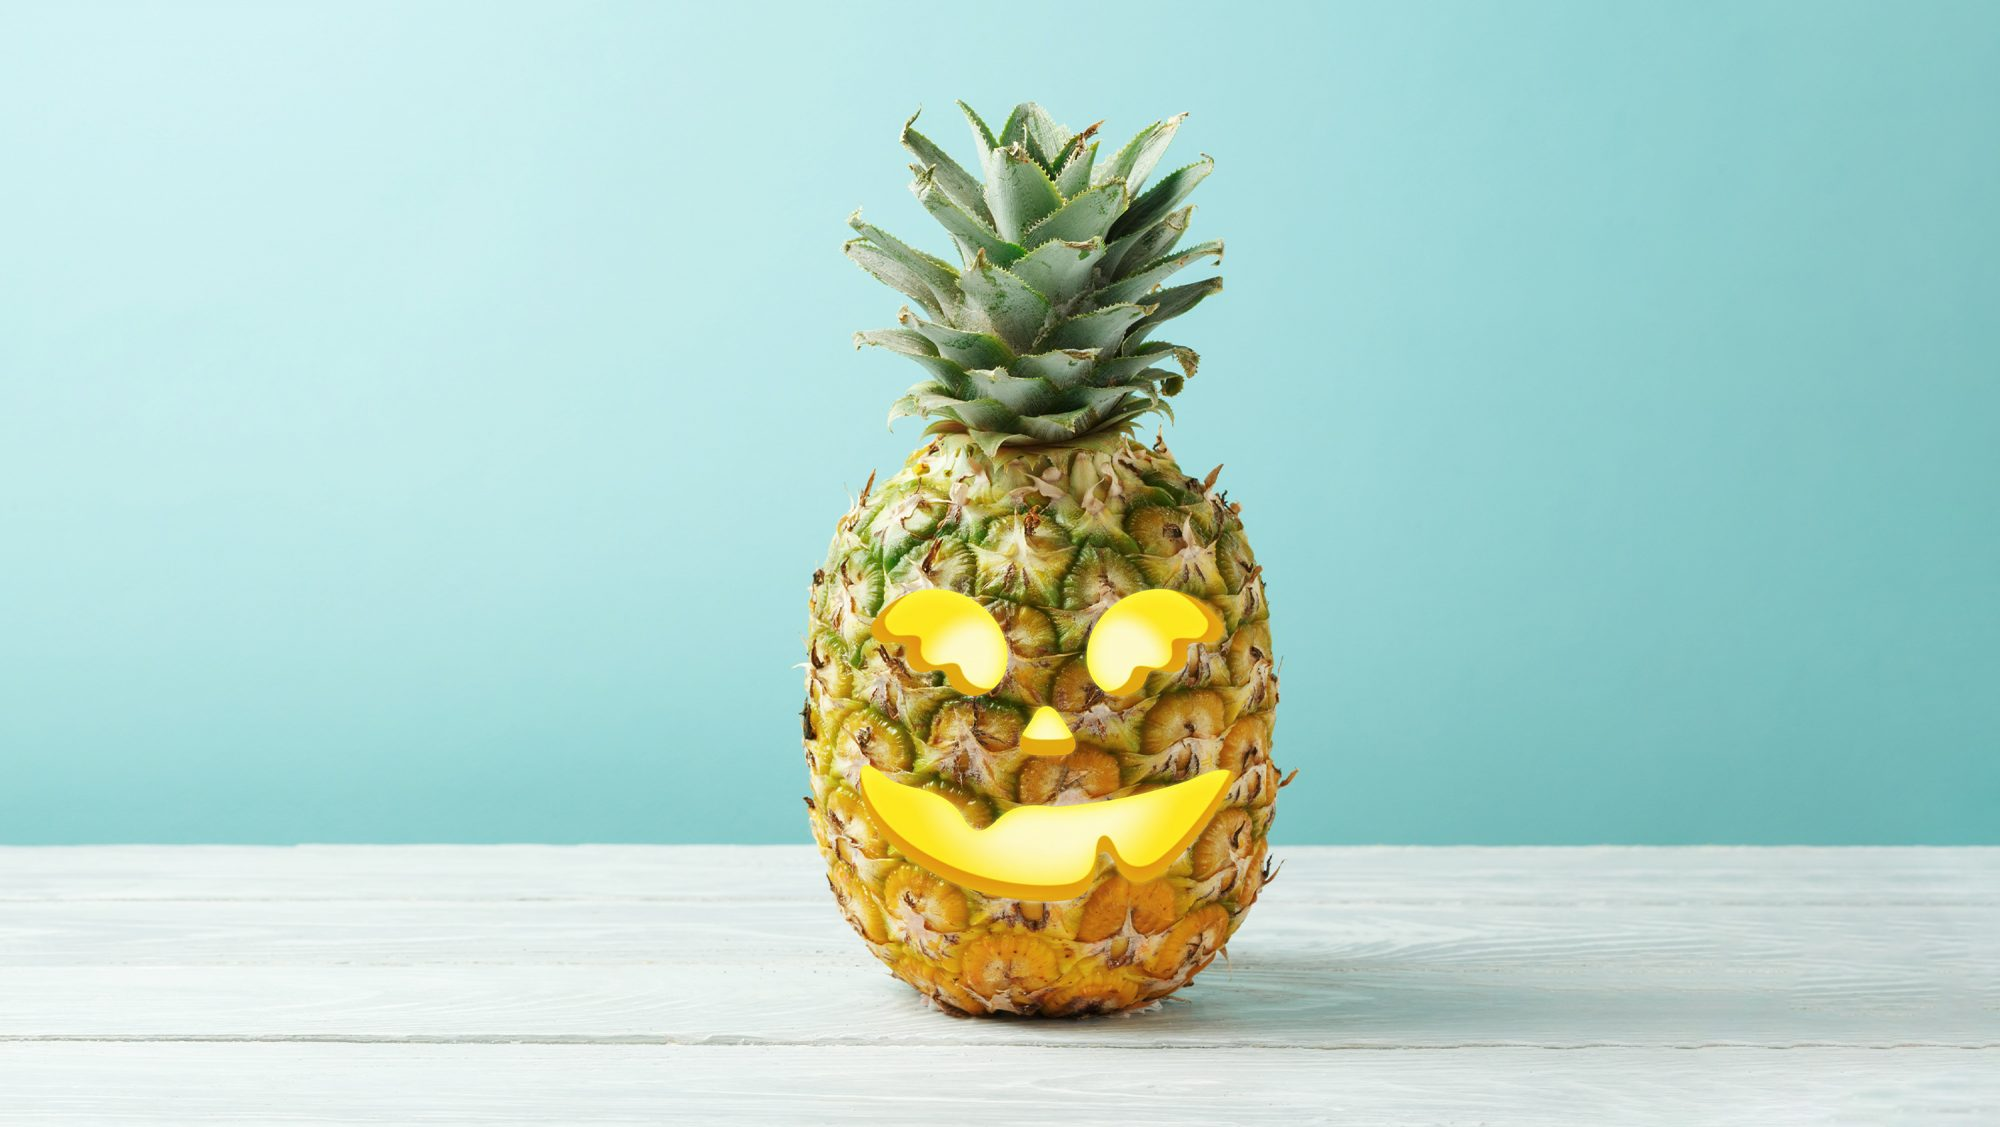 Pineapple carving: how to carve a pineapple jack-o'-lantern